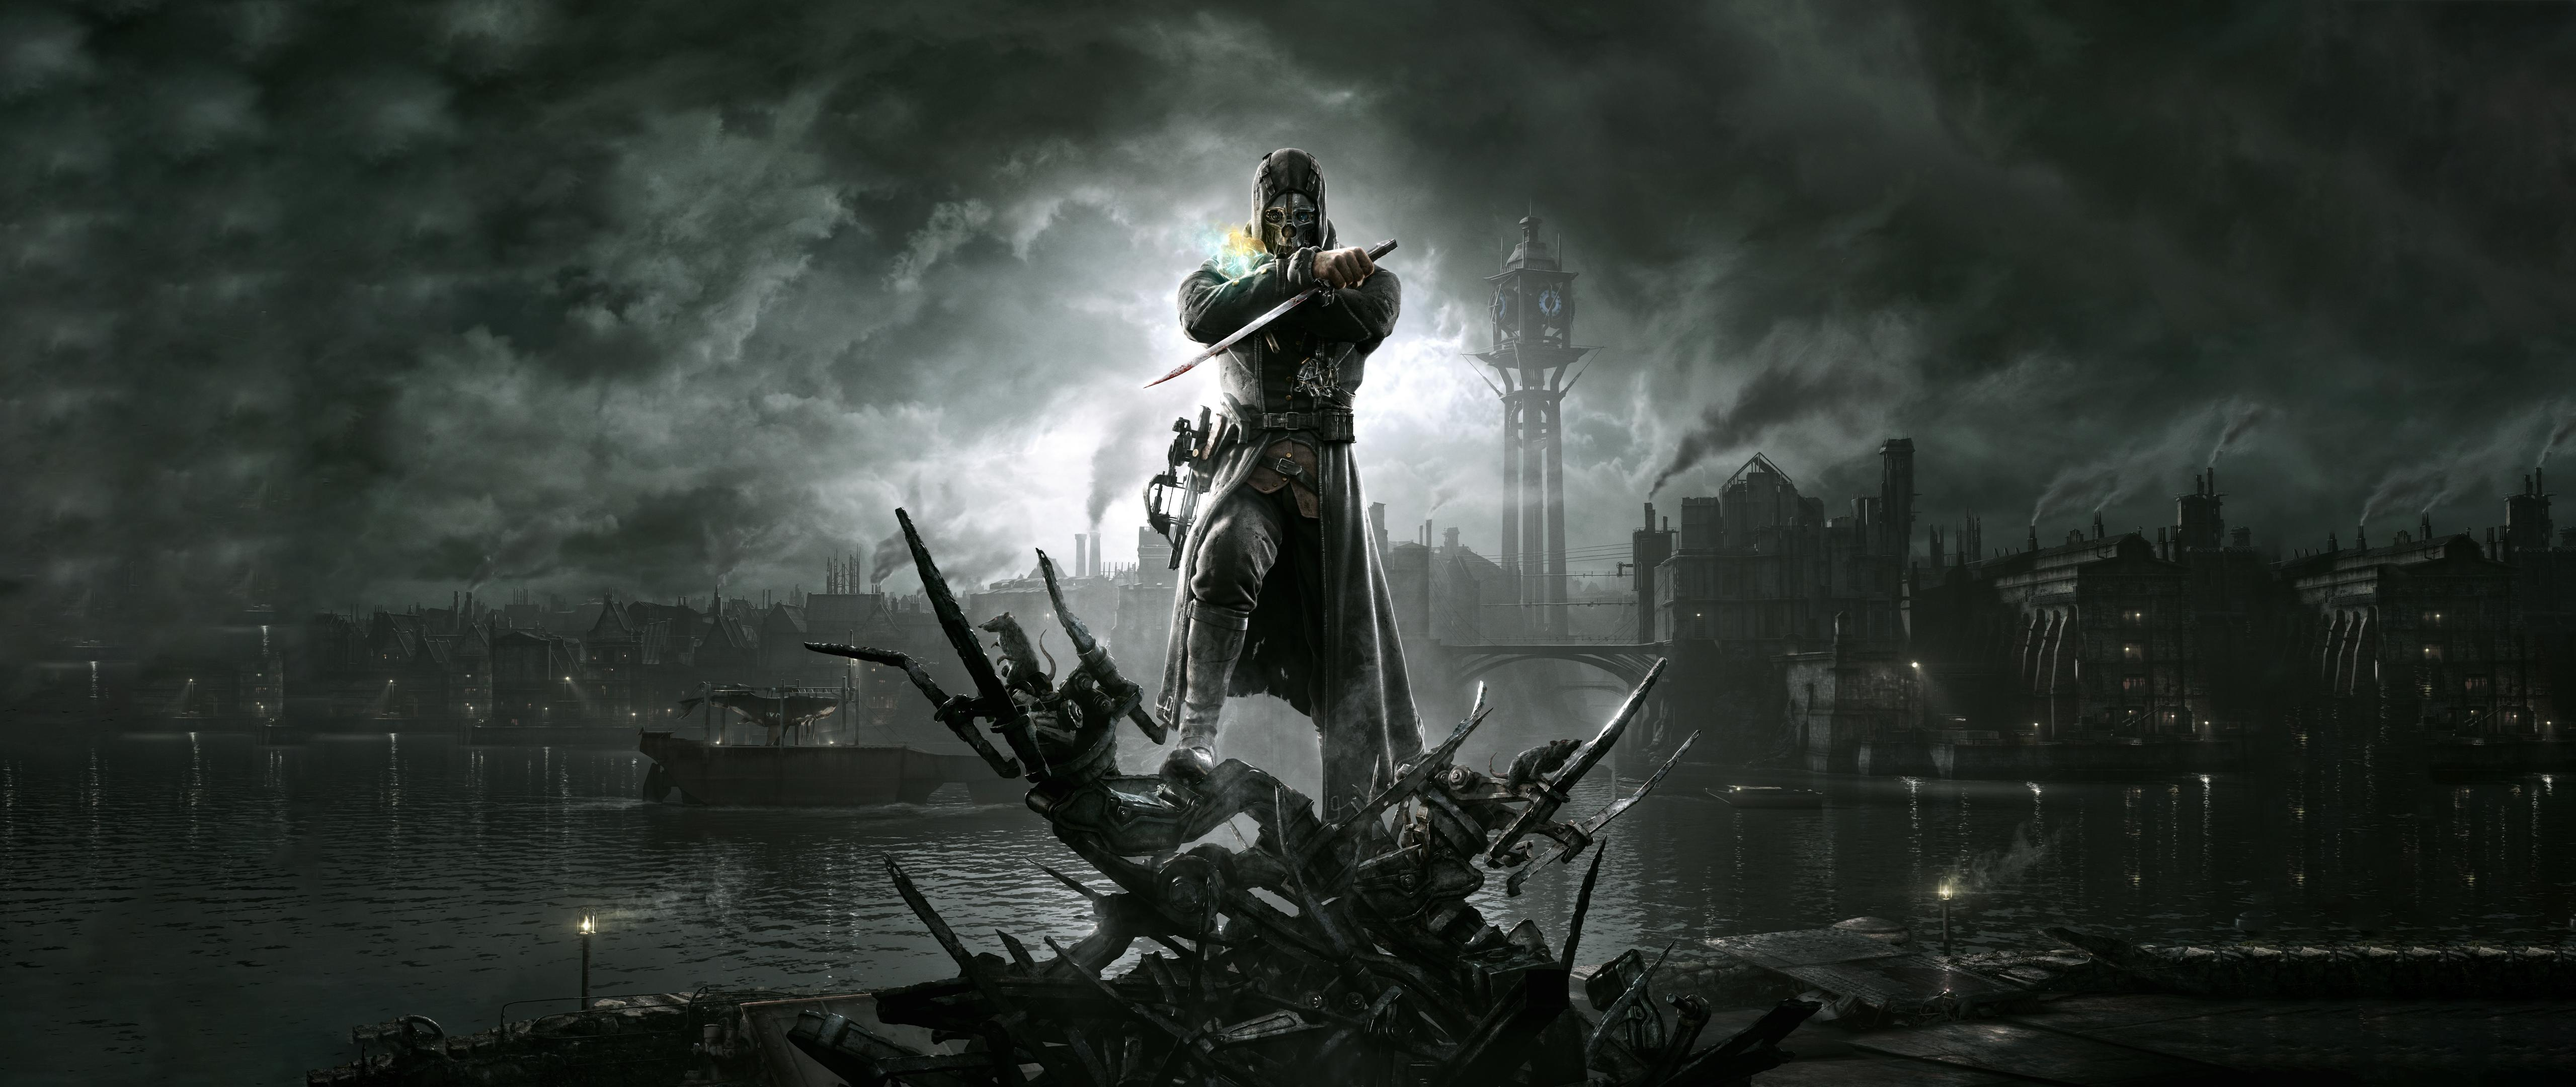 Dishonored Wallpaper 4k: Dishonored 5k, HD Games, 4k Wallpapers, Images